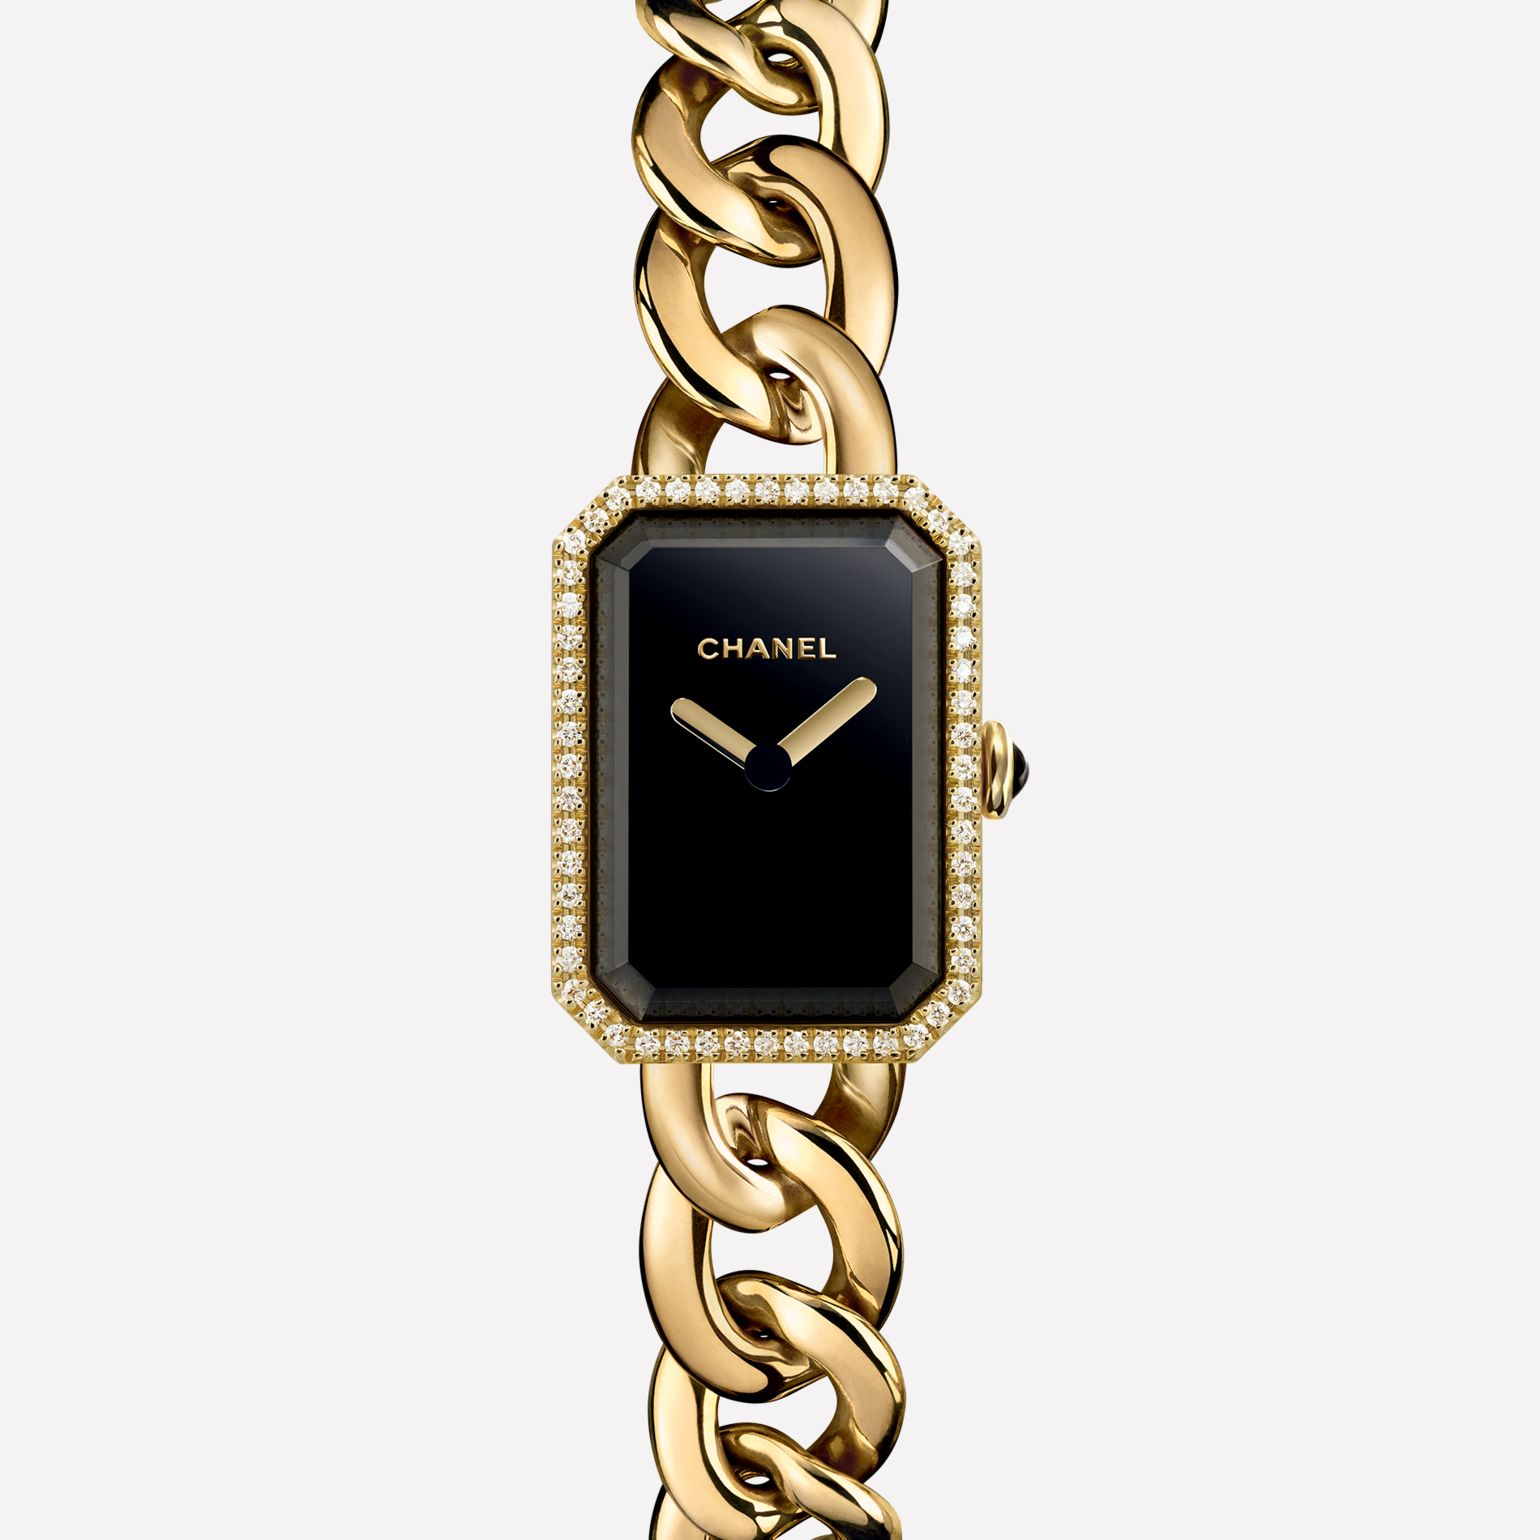 Première Chaîne Watch Small version, yellow gold and diamonds, black dial